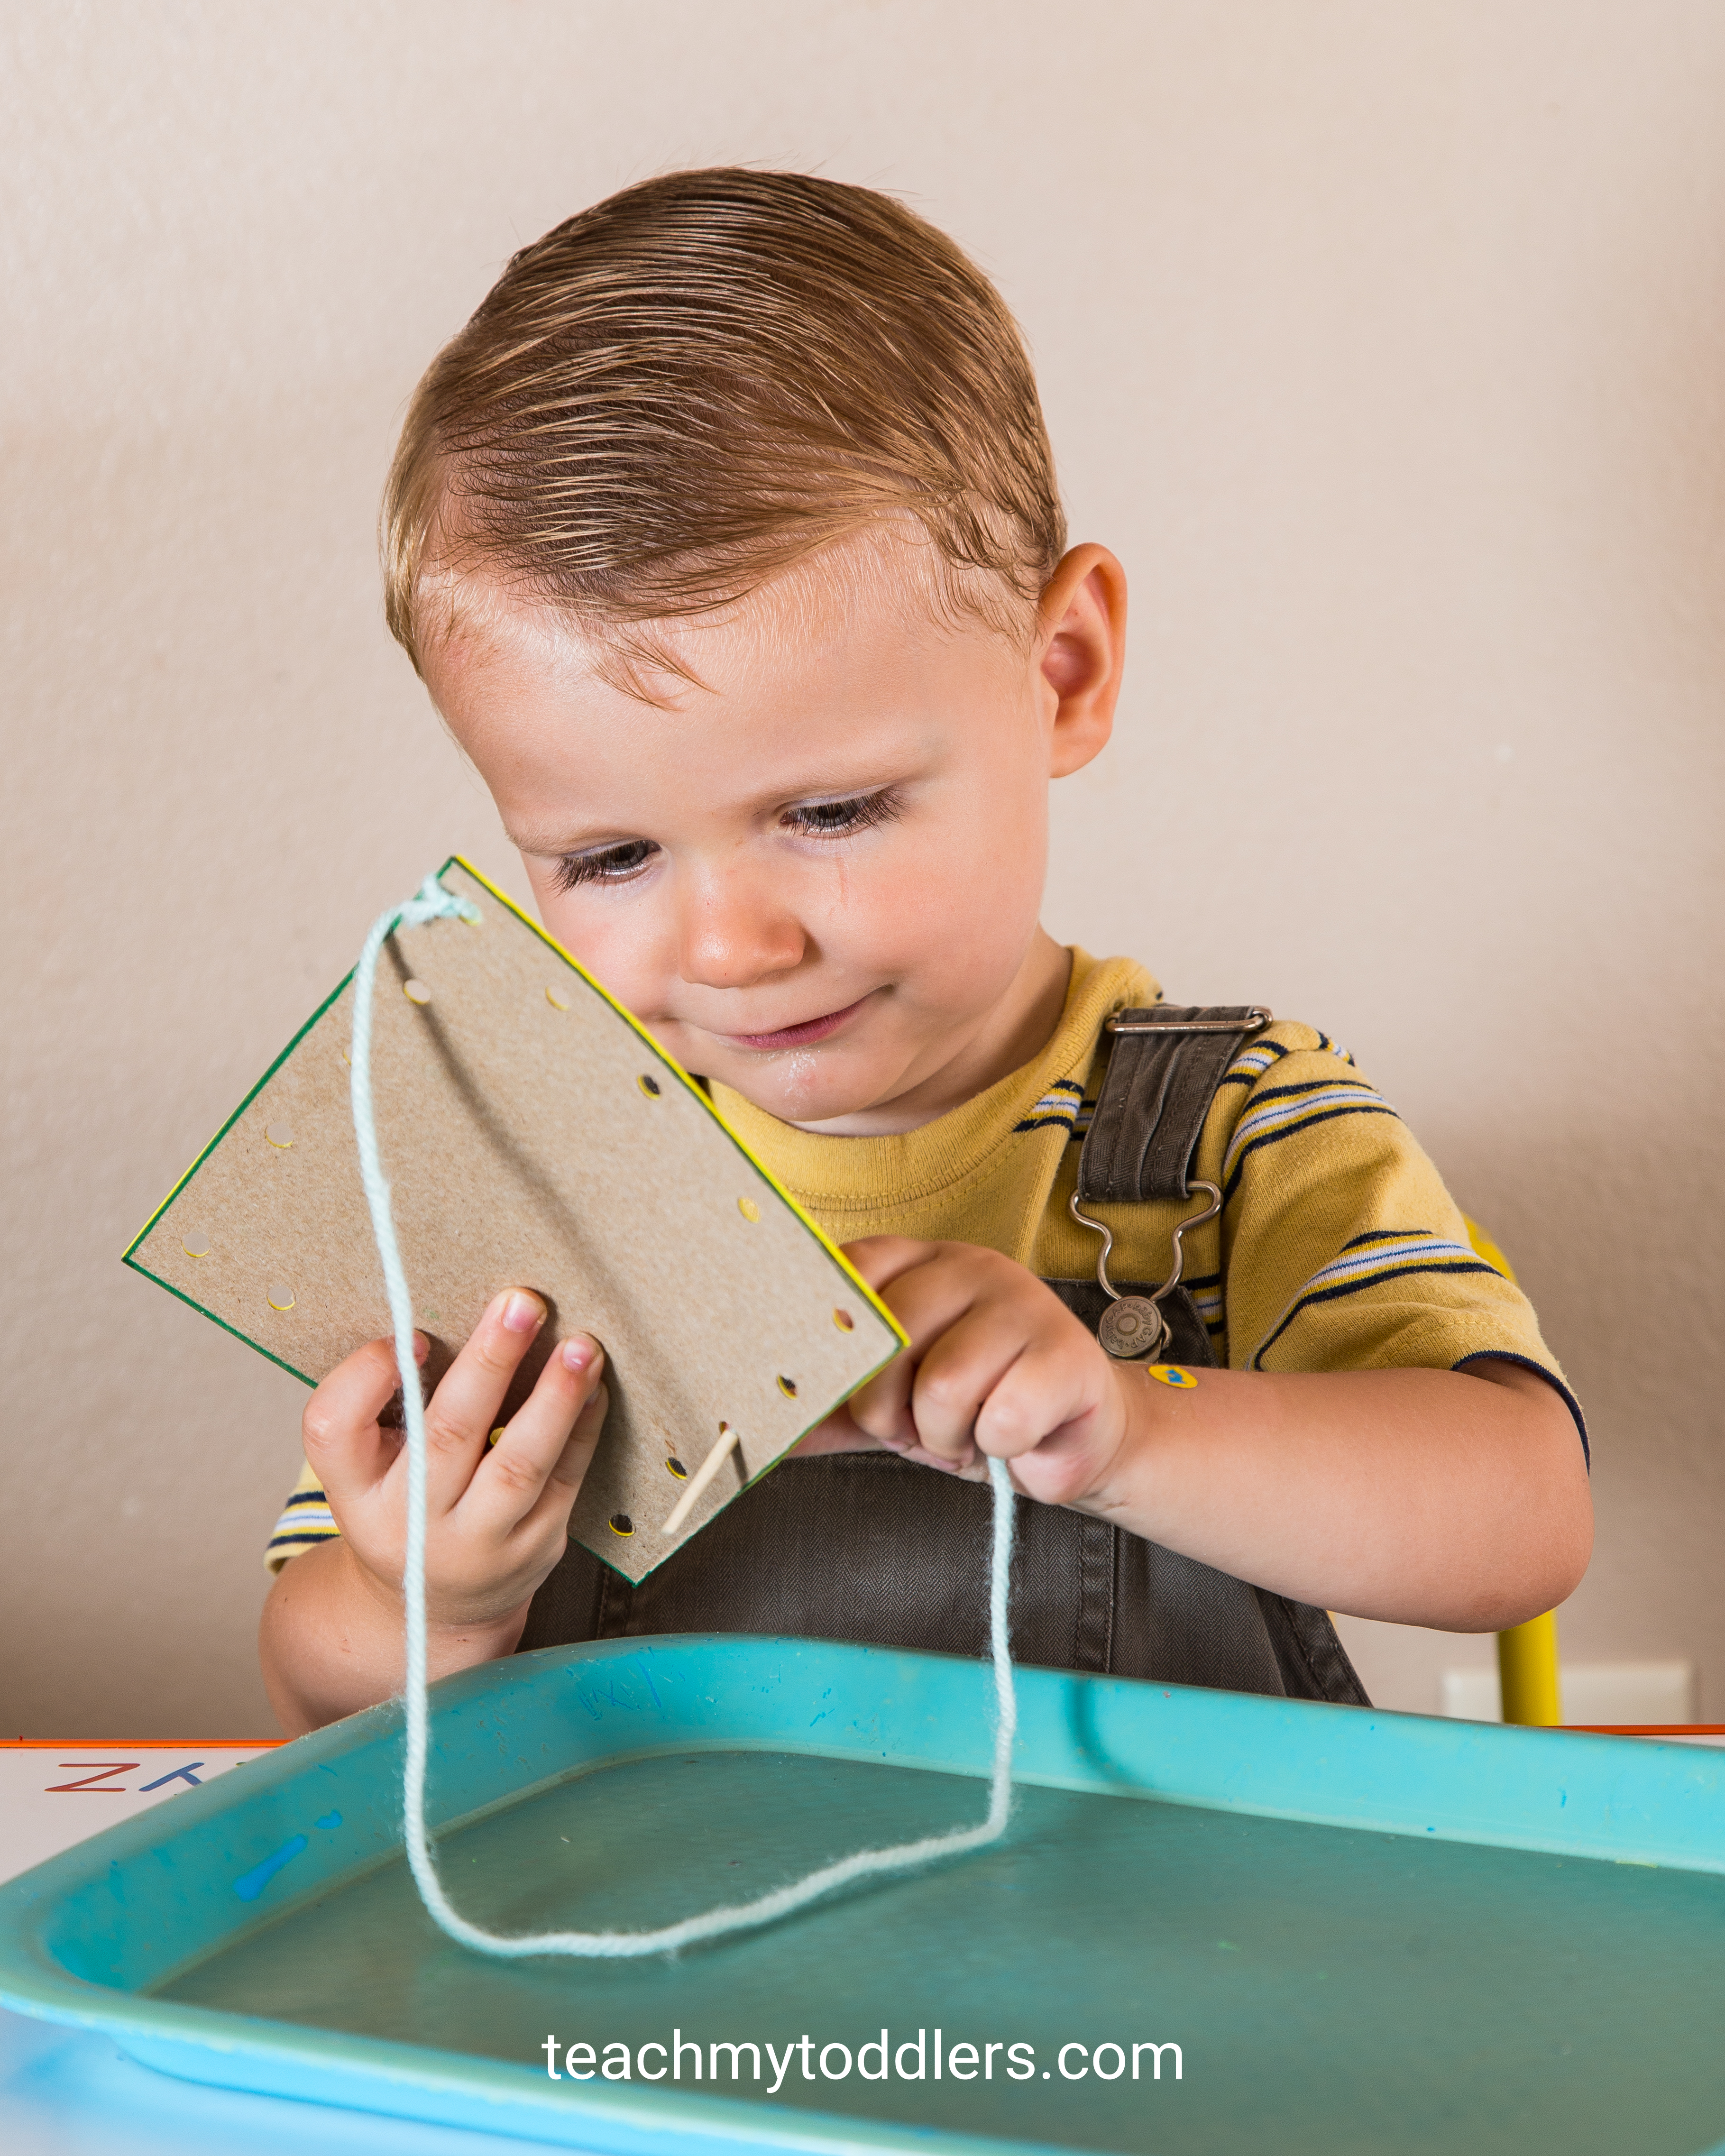 These square trays are exciting to use to teach toddlers shapes